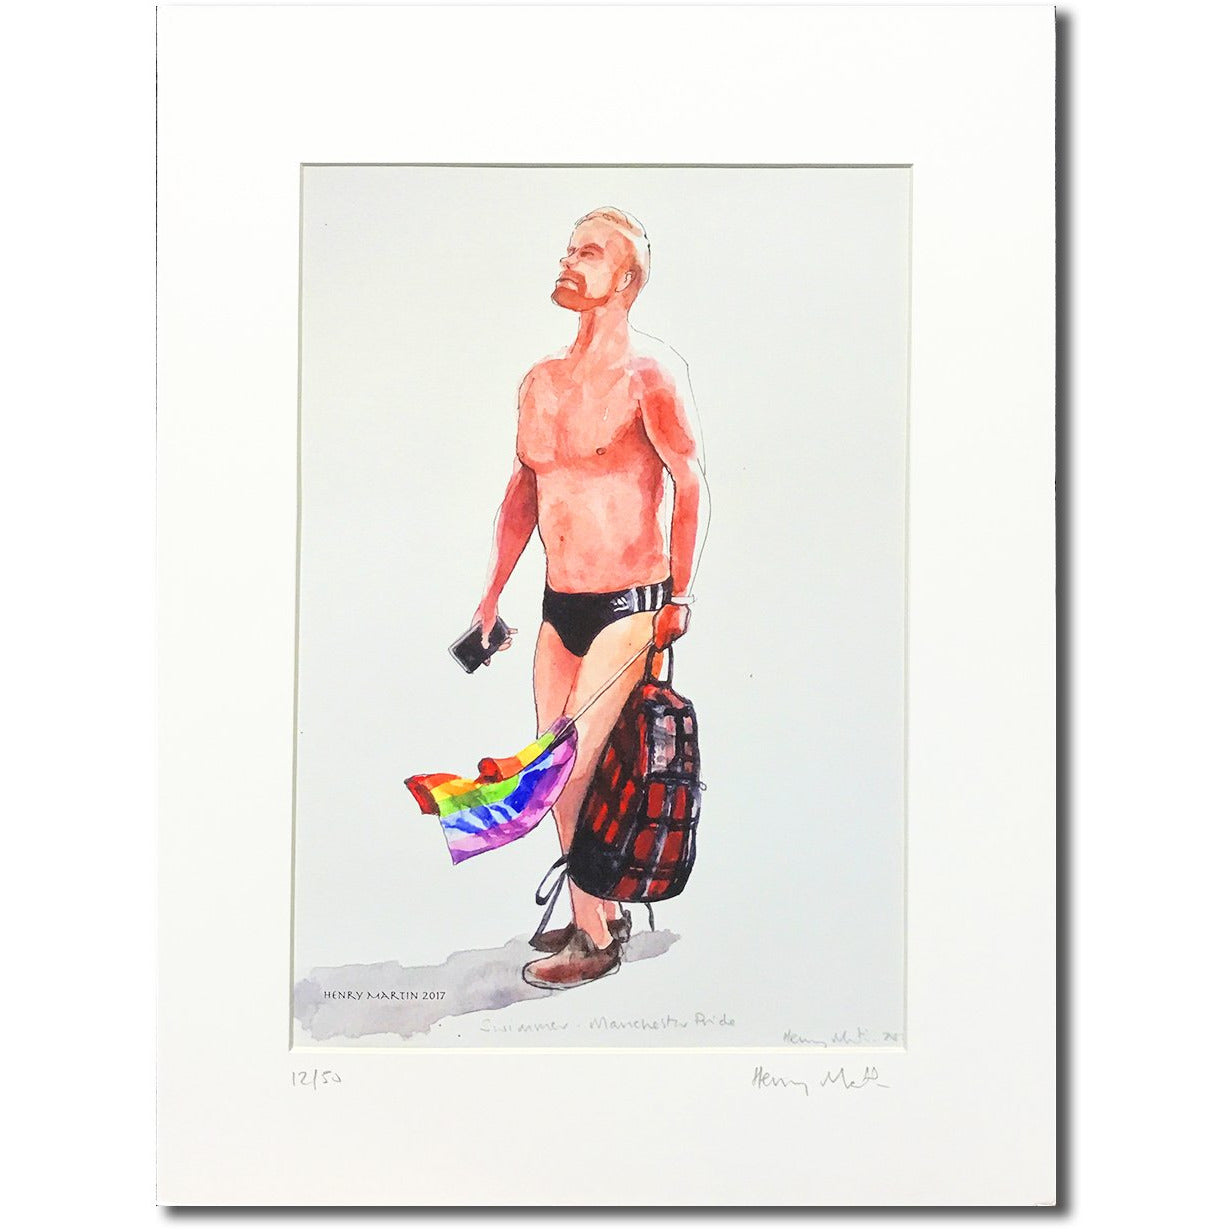 Swimmer by Henry Martin - signed and mounted limited edition A4 print #12/50 - Egoiste Gallery - Art Gallery in Manchester City Centre